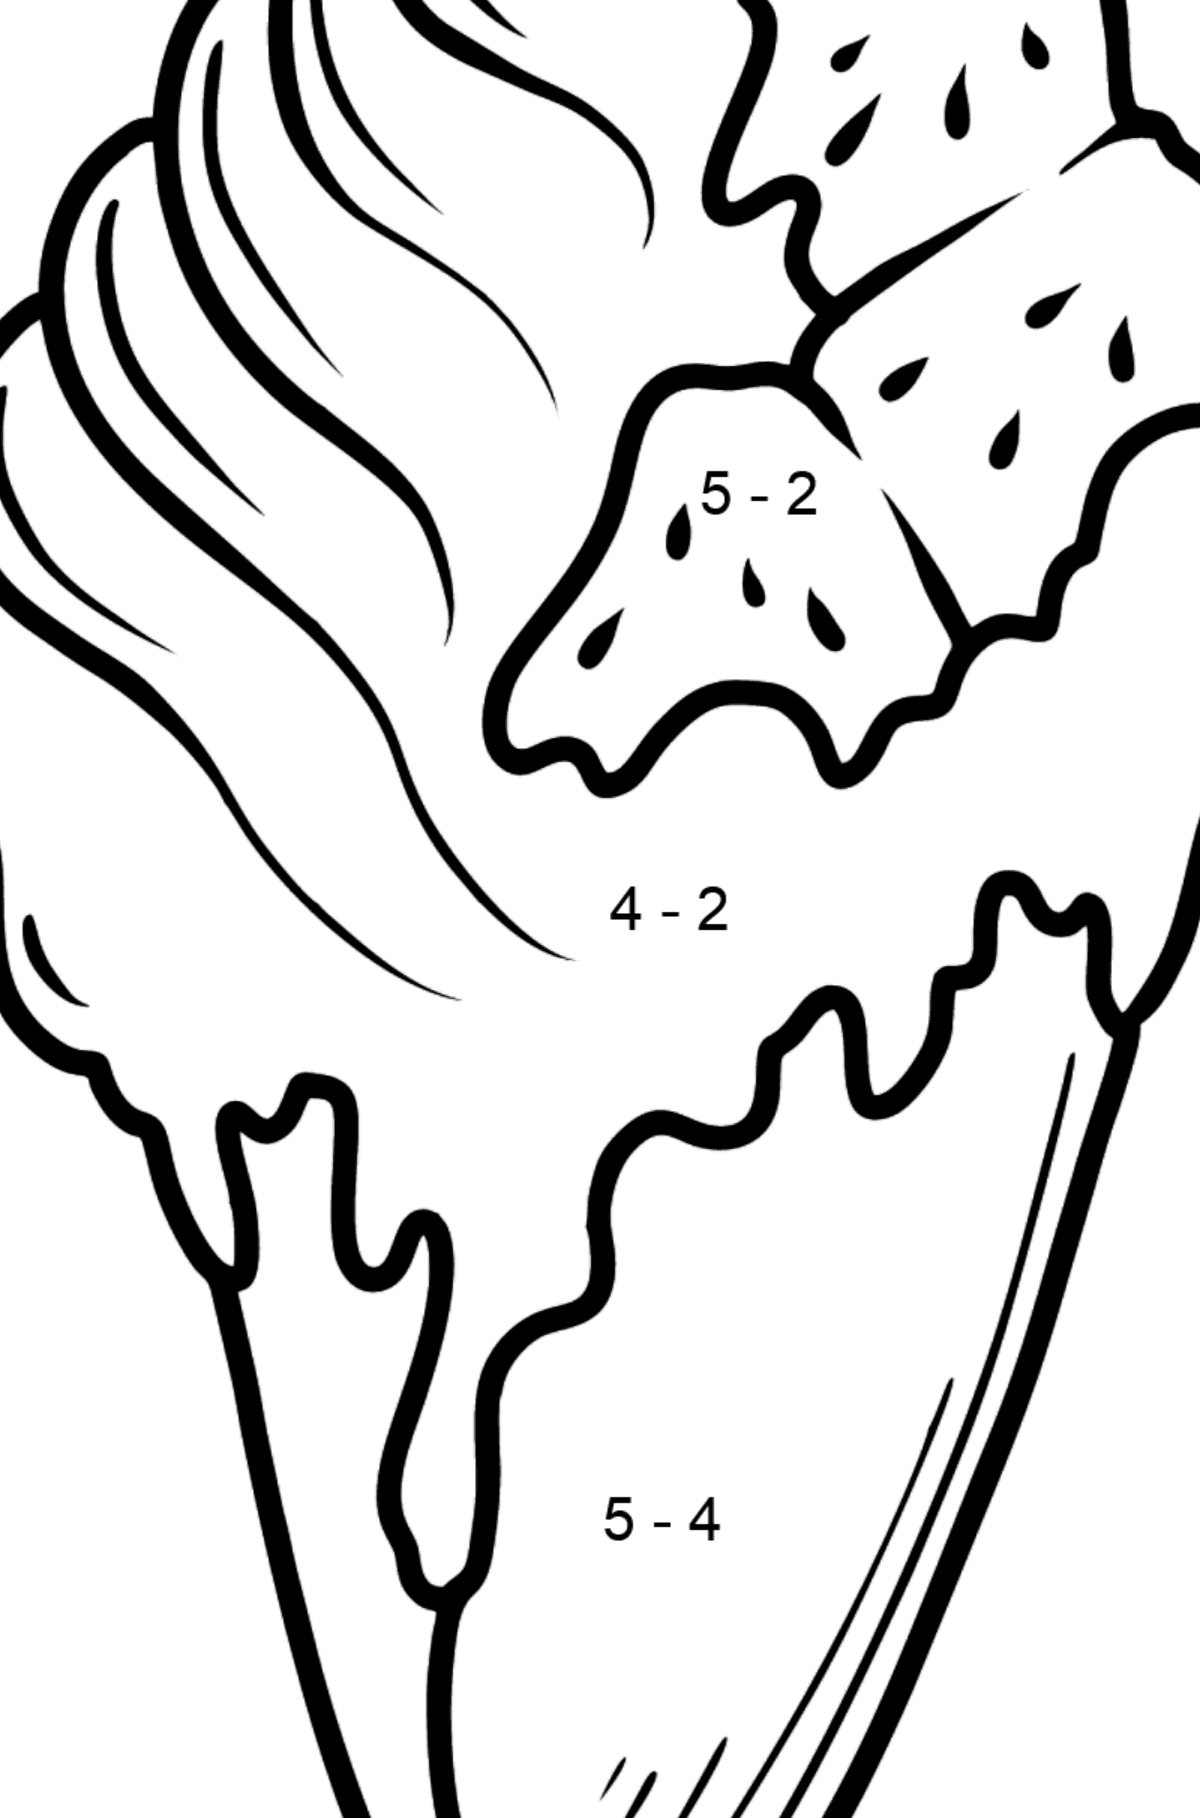 Banana Ice Cream and Jam Cone coloring page - Math Coloring - Subtraction for Kids